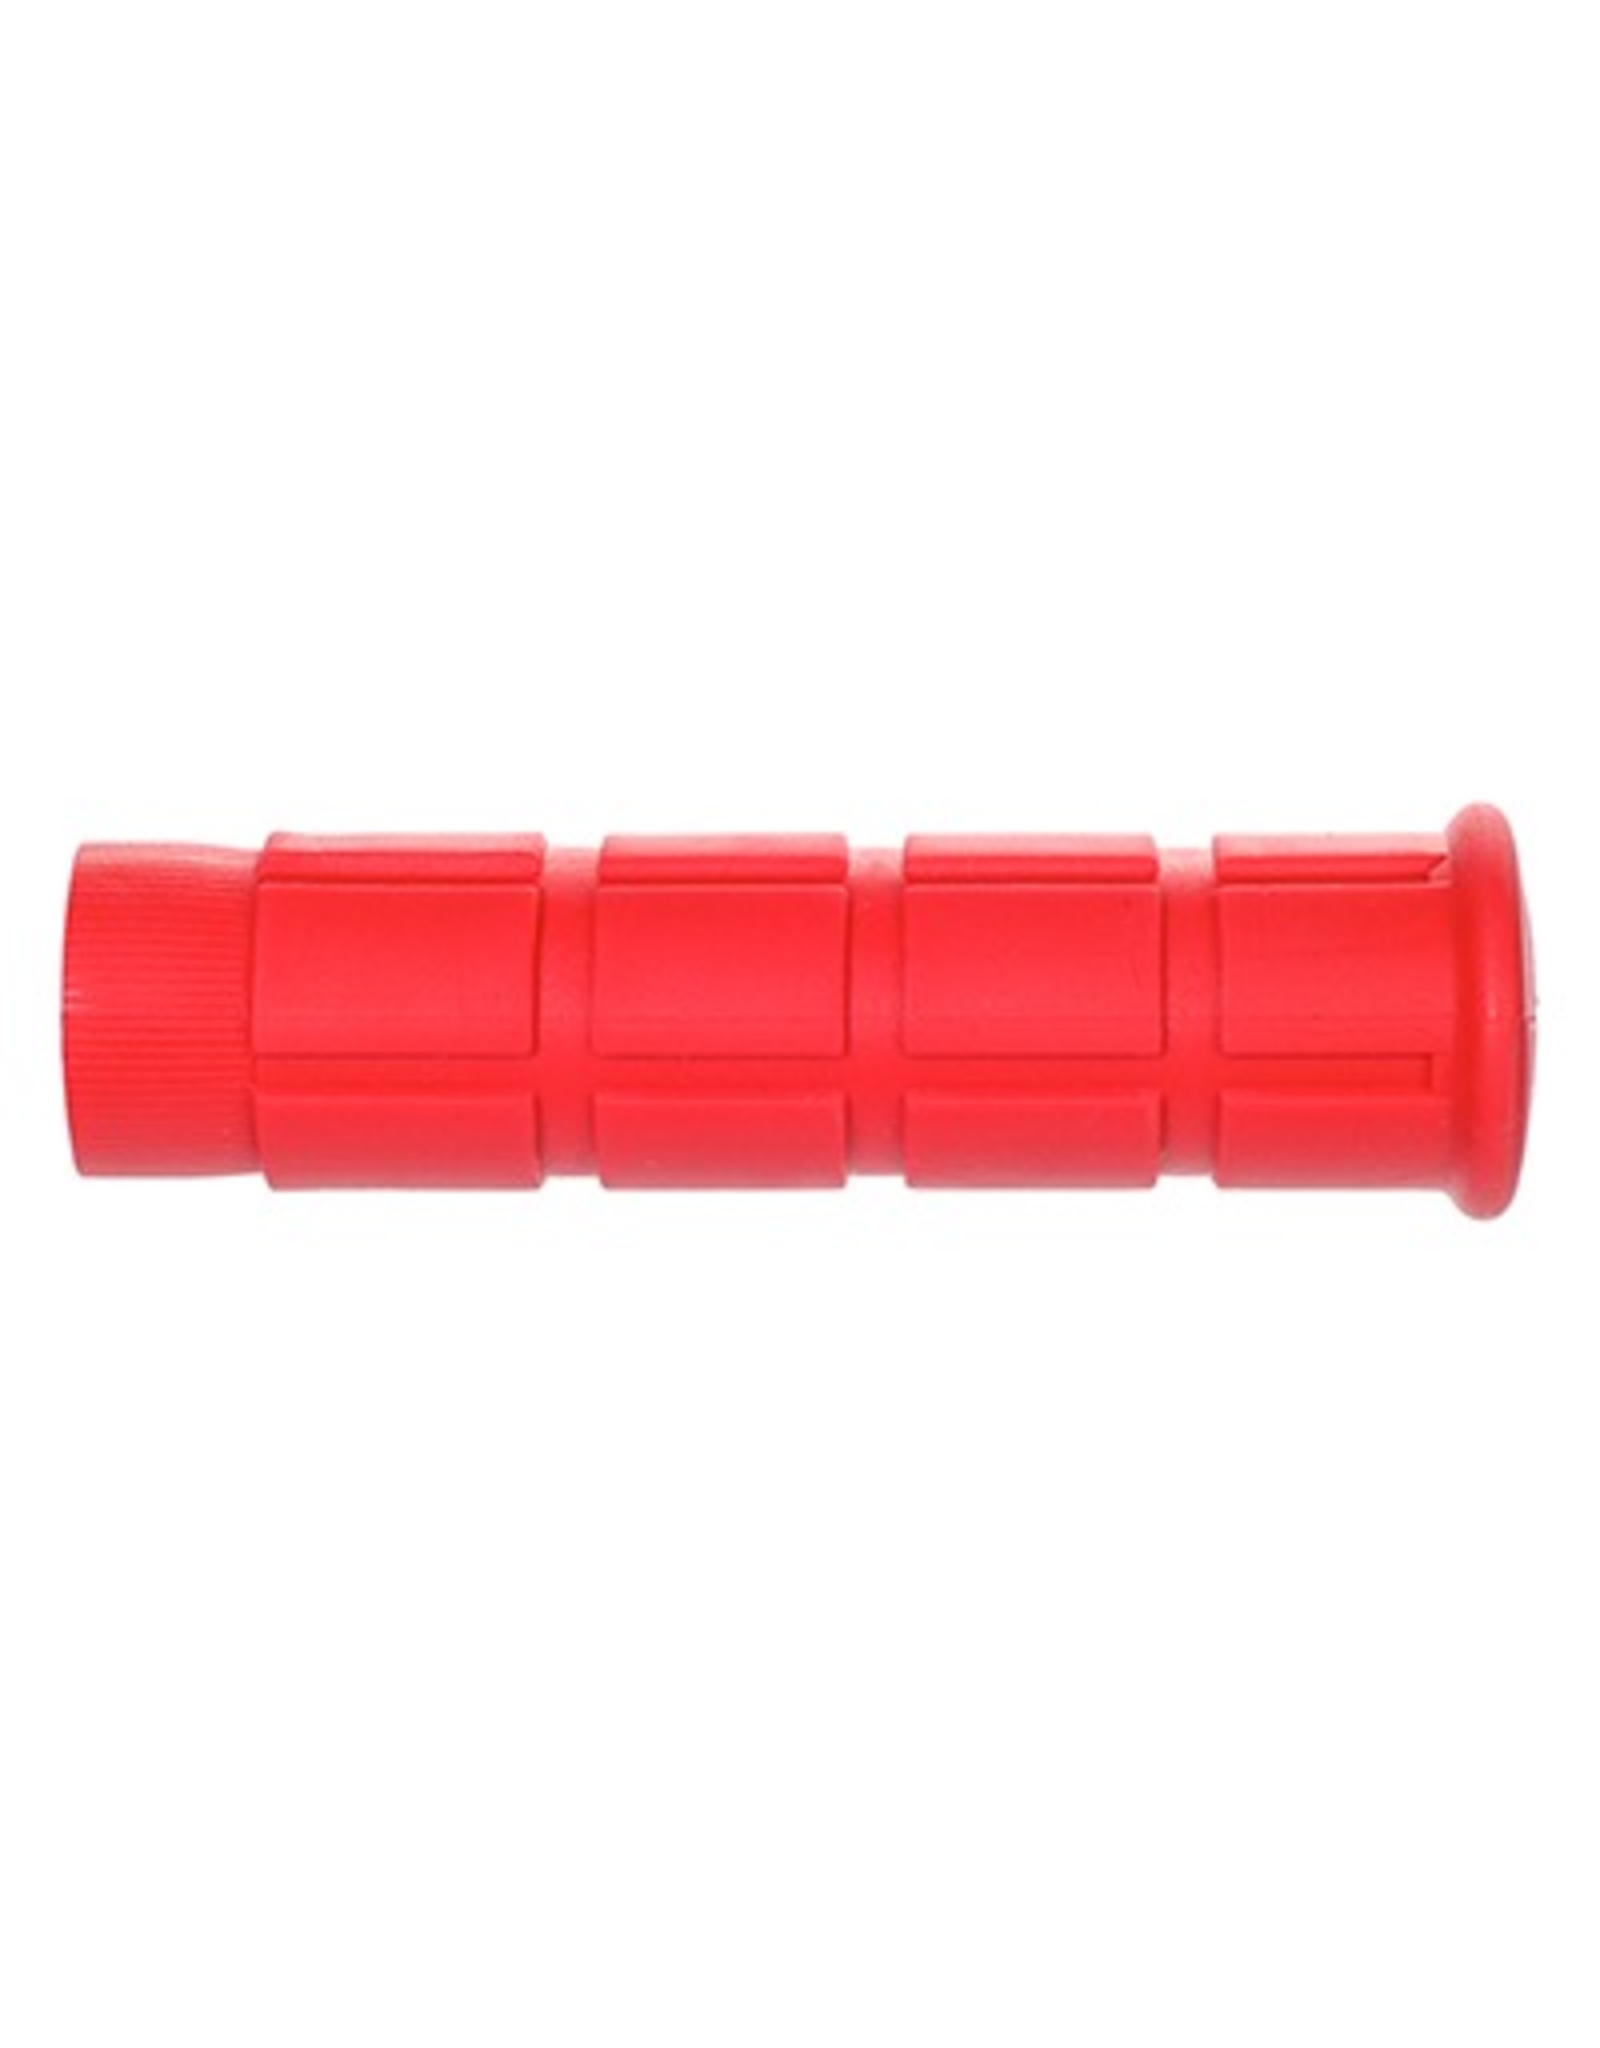 Sunlite Classic Mountain Grips - Red